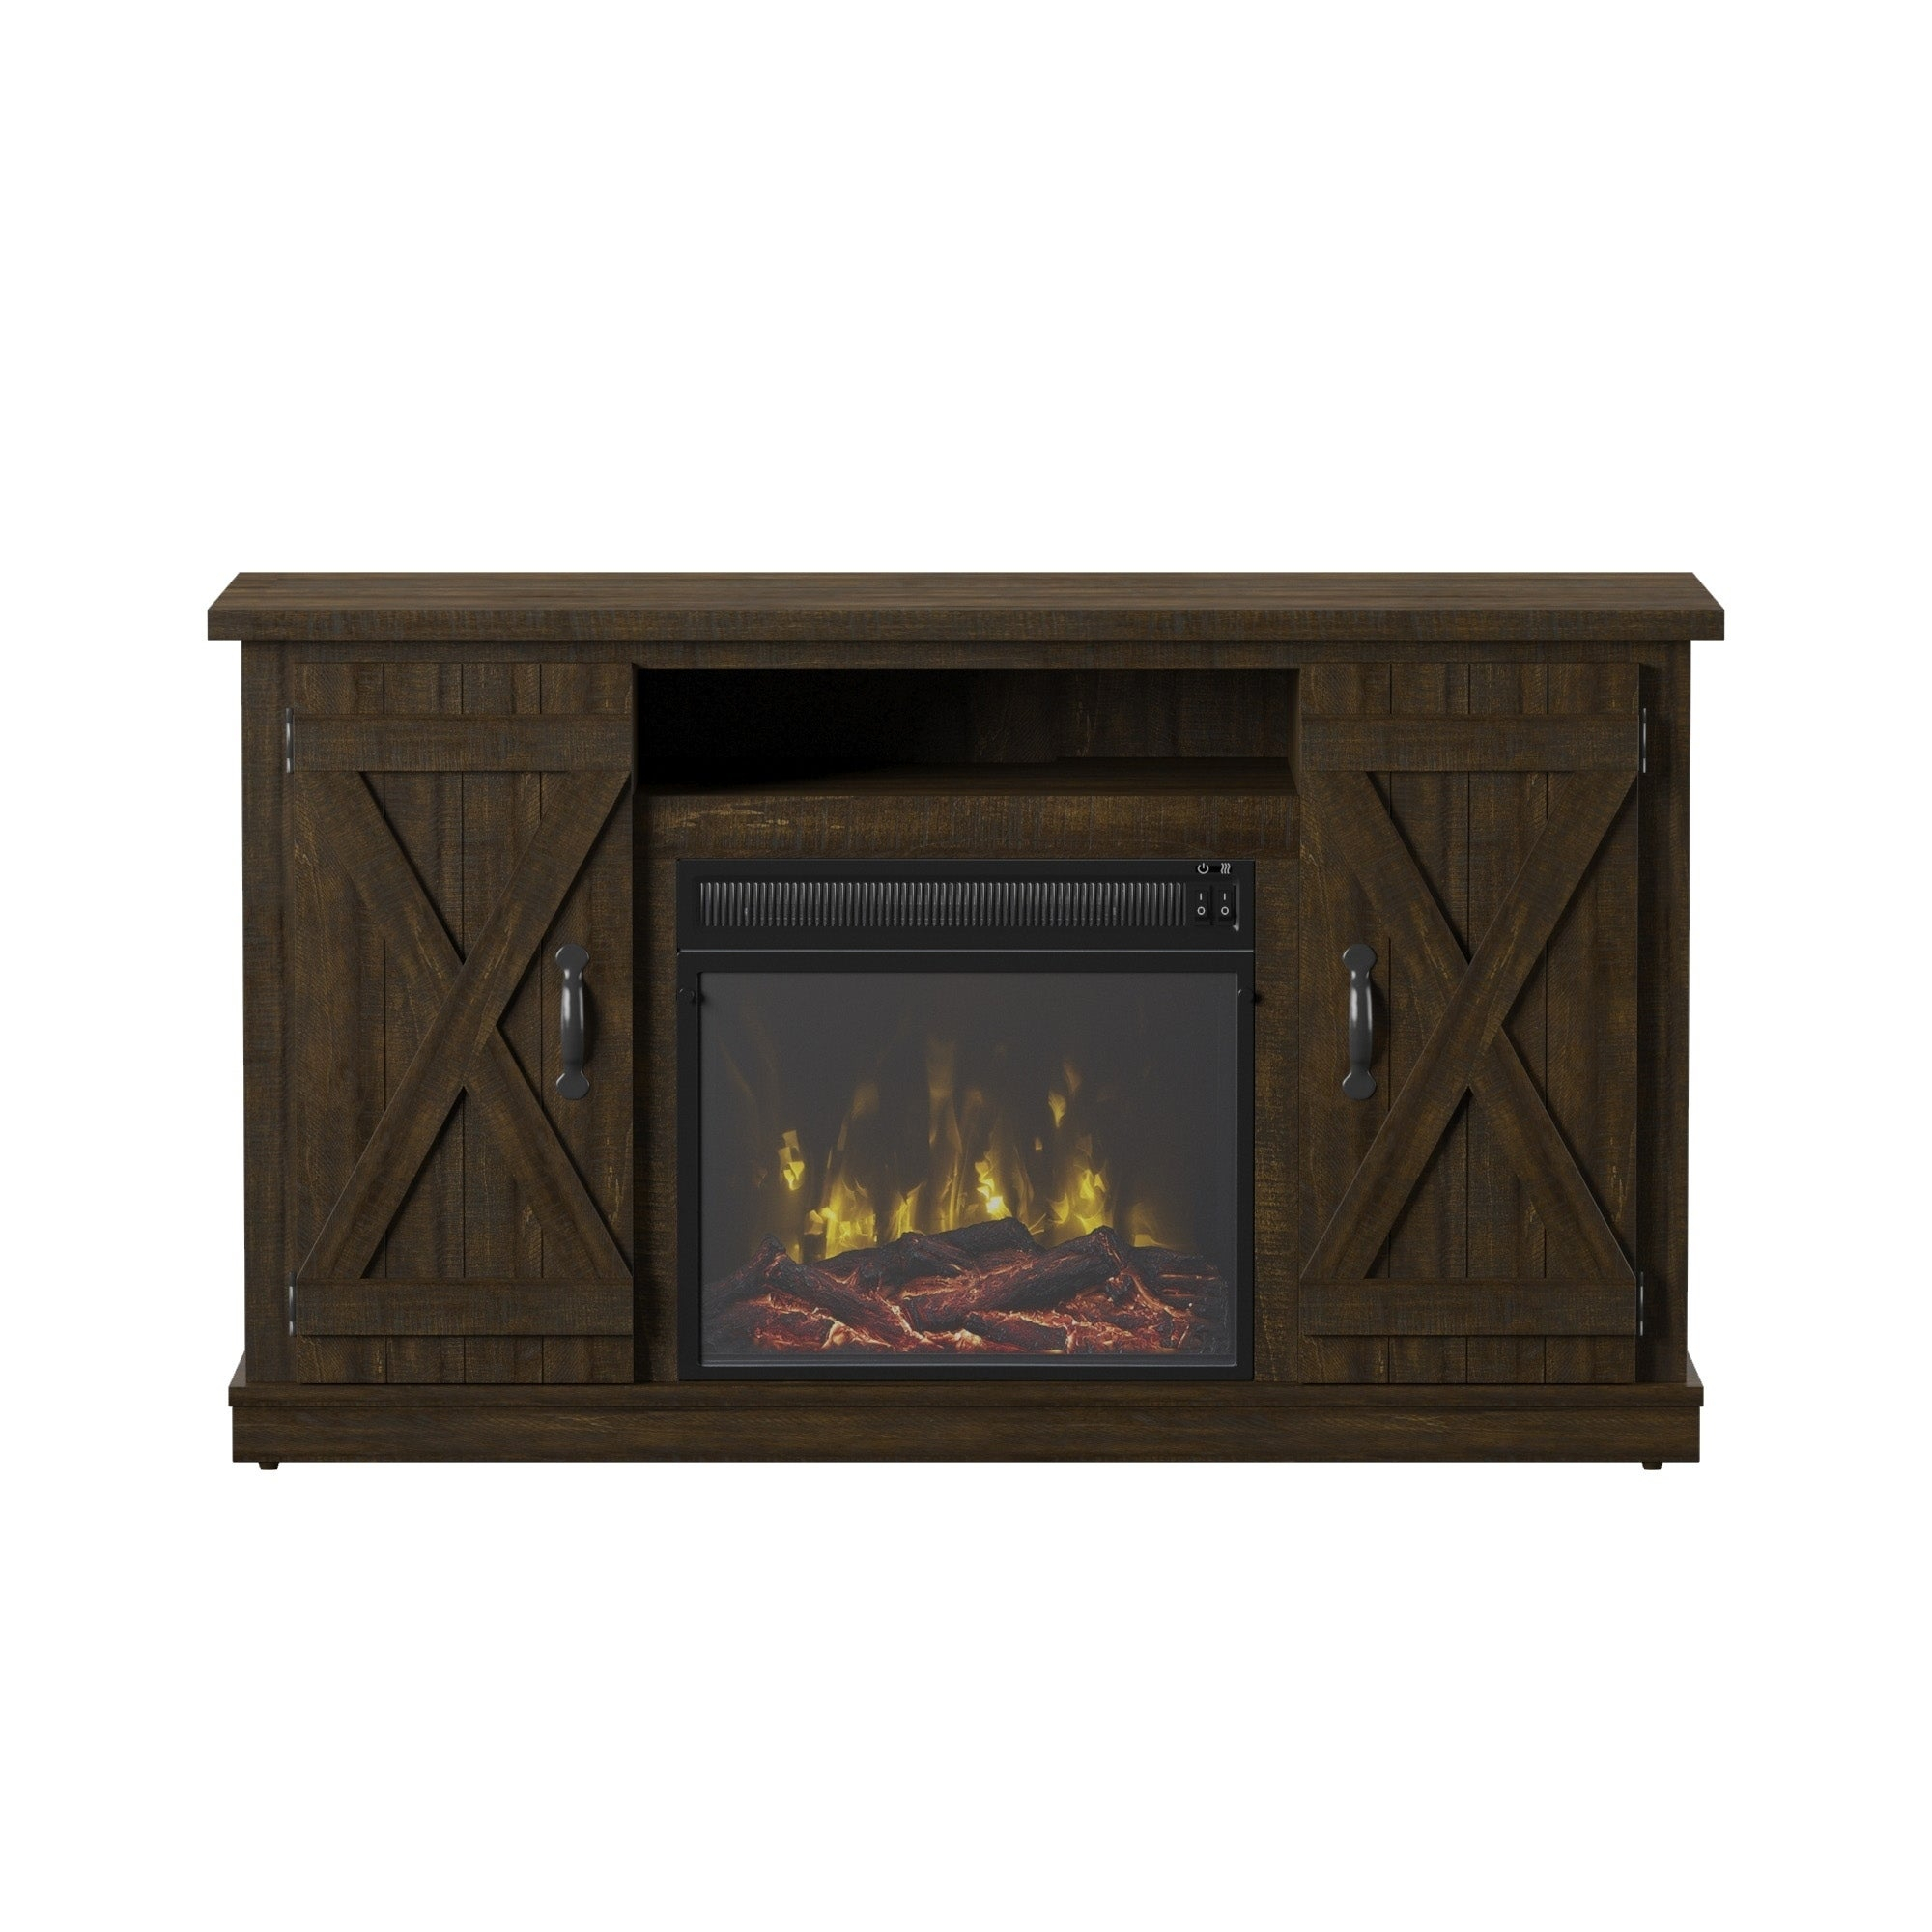 """Shop Cottonwood Tv Stand For Tvs Up To 55"""", Saw Cut Espresso For Most Recently Released Ericka Tv Stands For Tvs Up To 42"""" (#16 of 20)"""